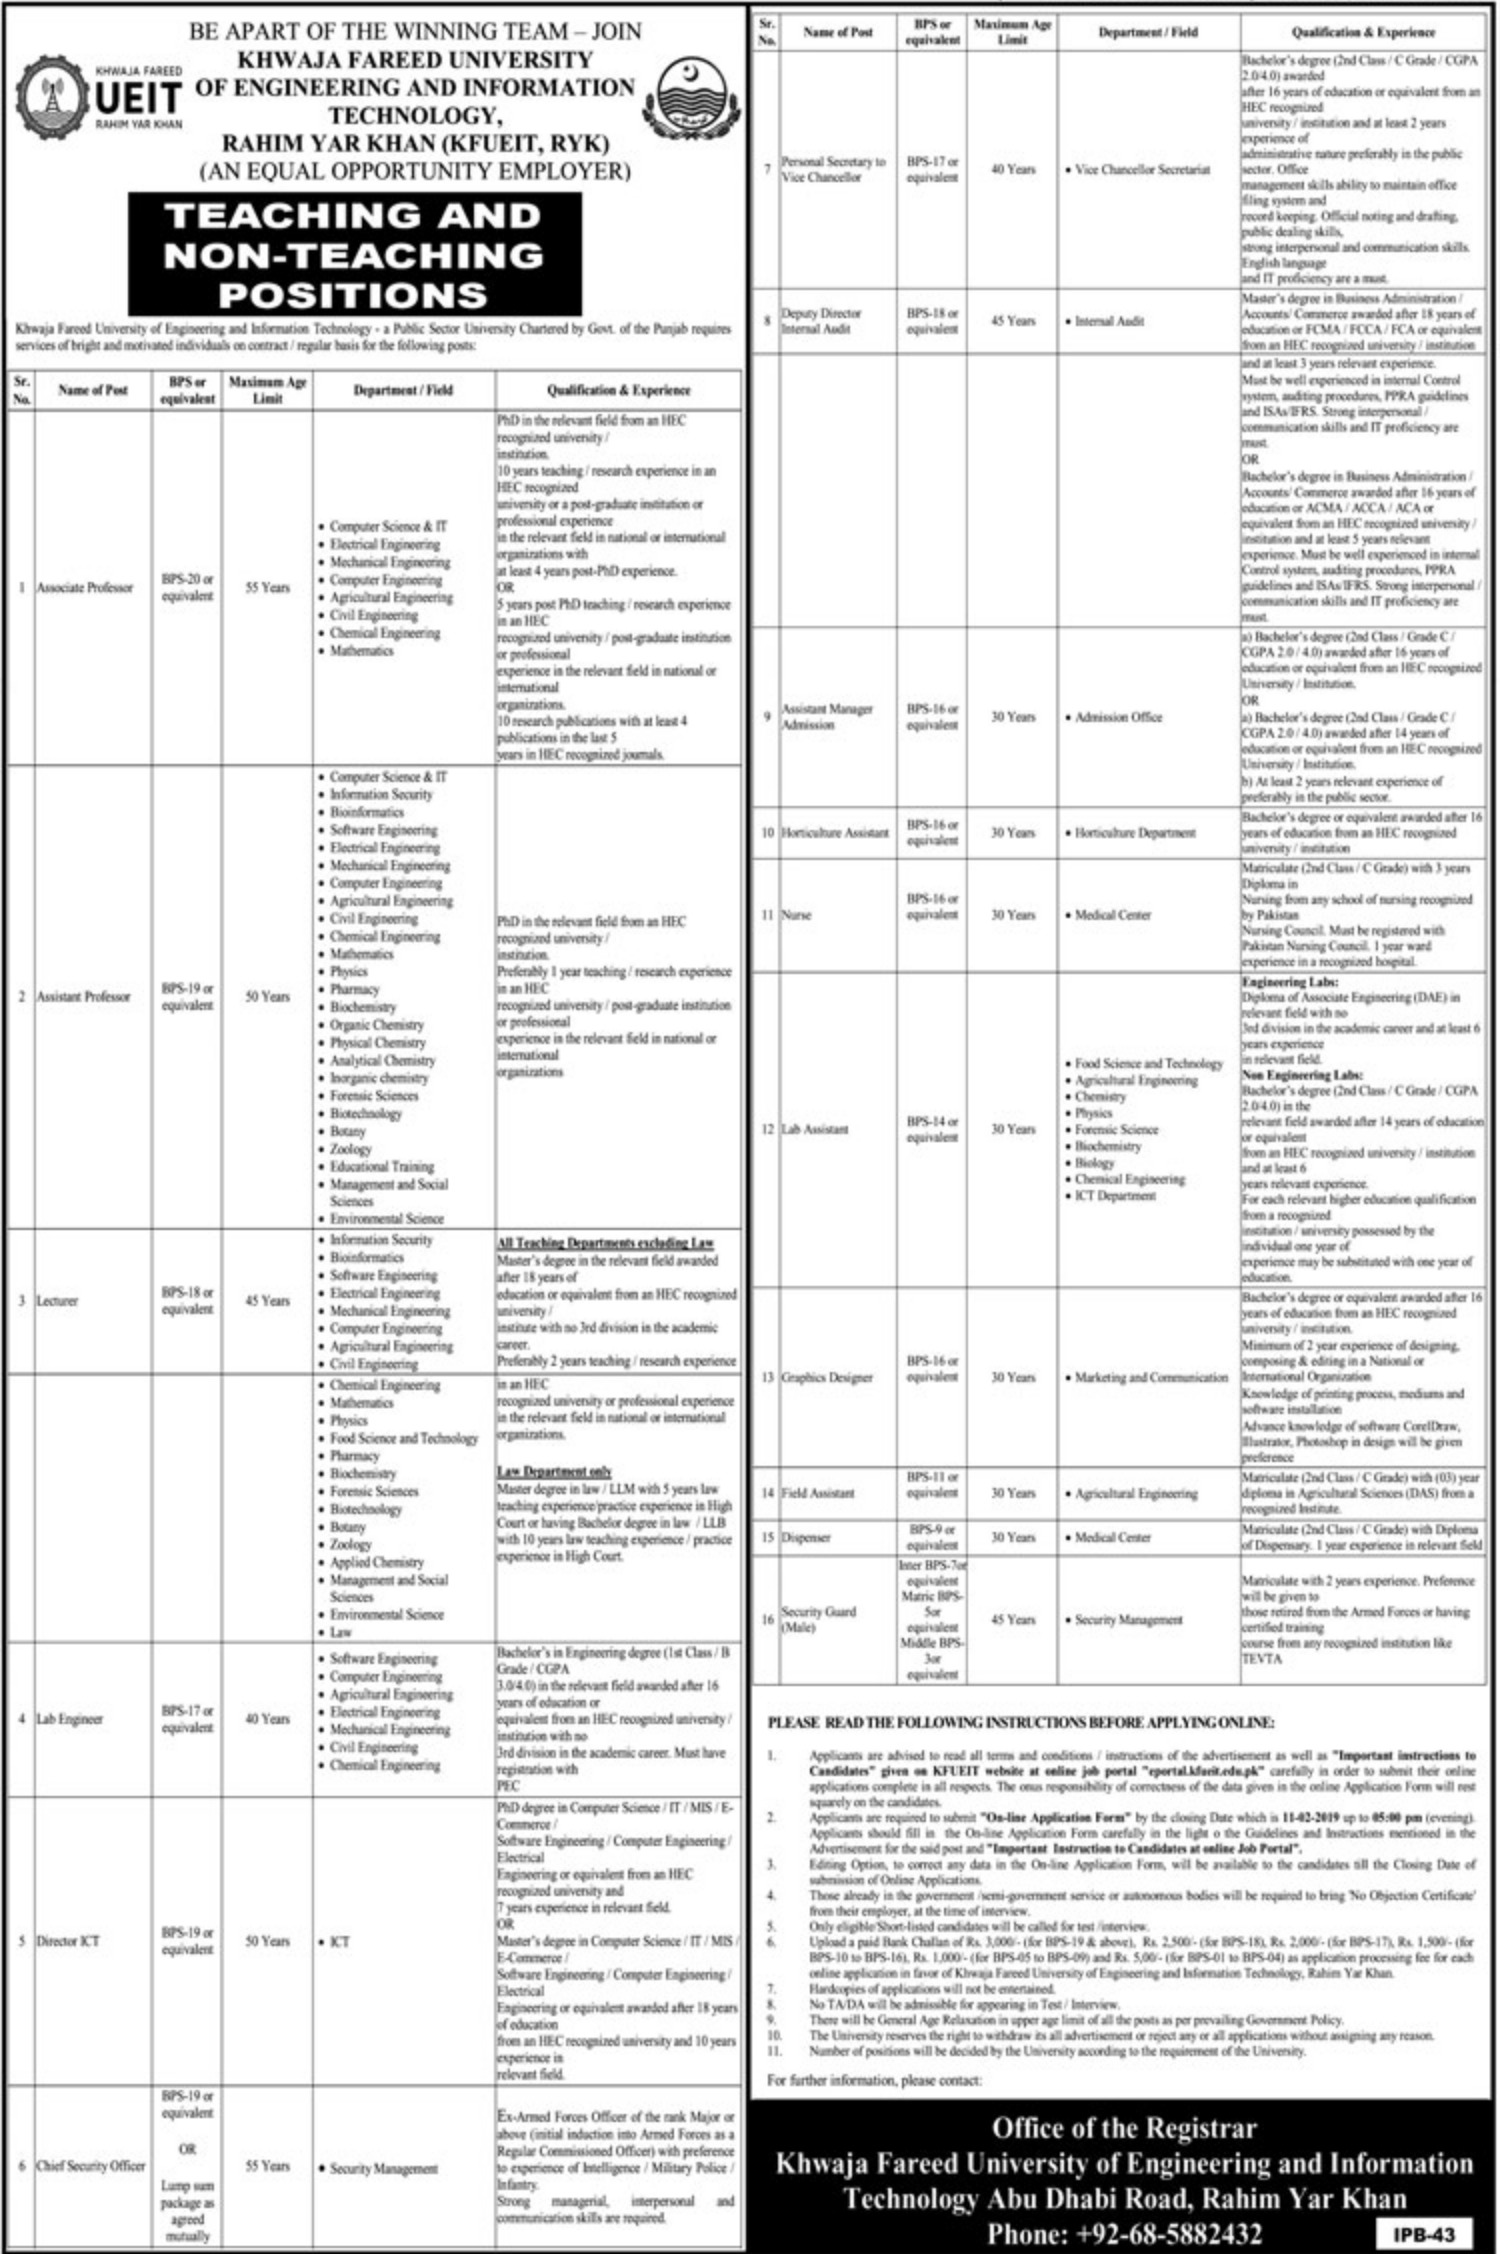 Khwaja Fareed University of Engineering & Information Technology Jobs 2019 KFUEIT RYK